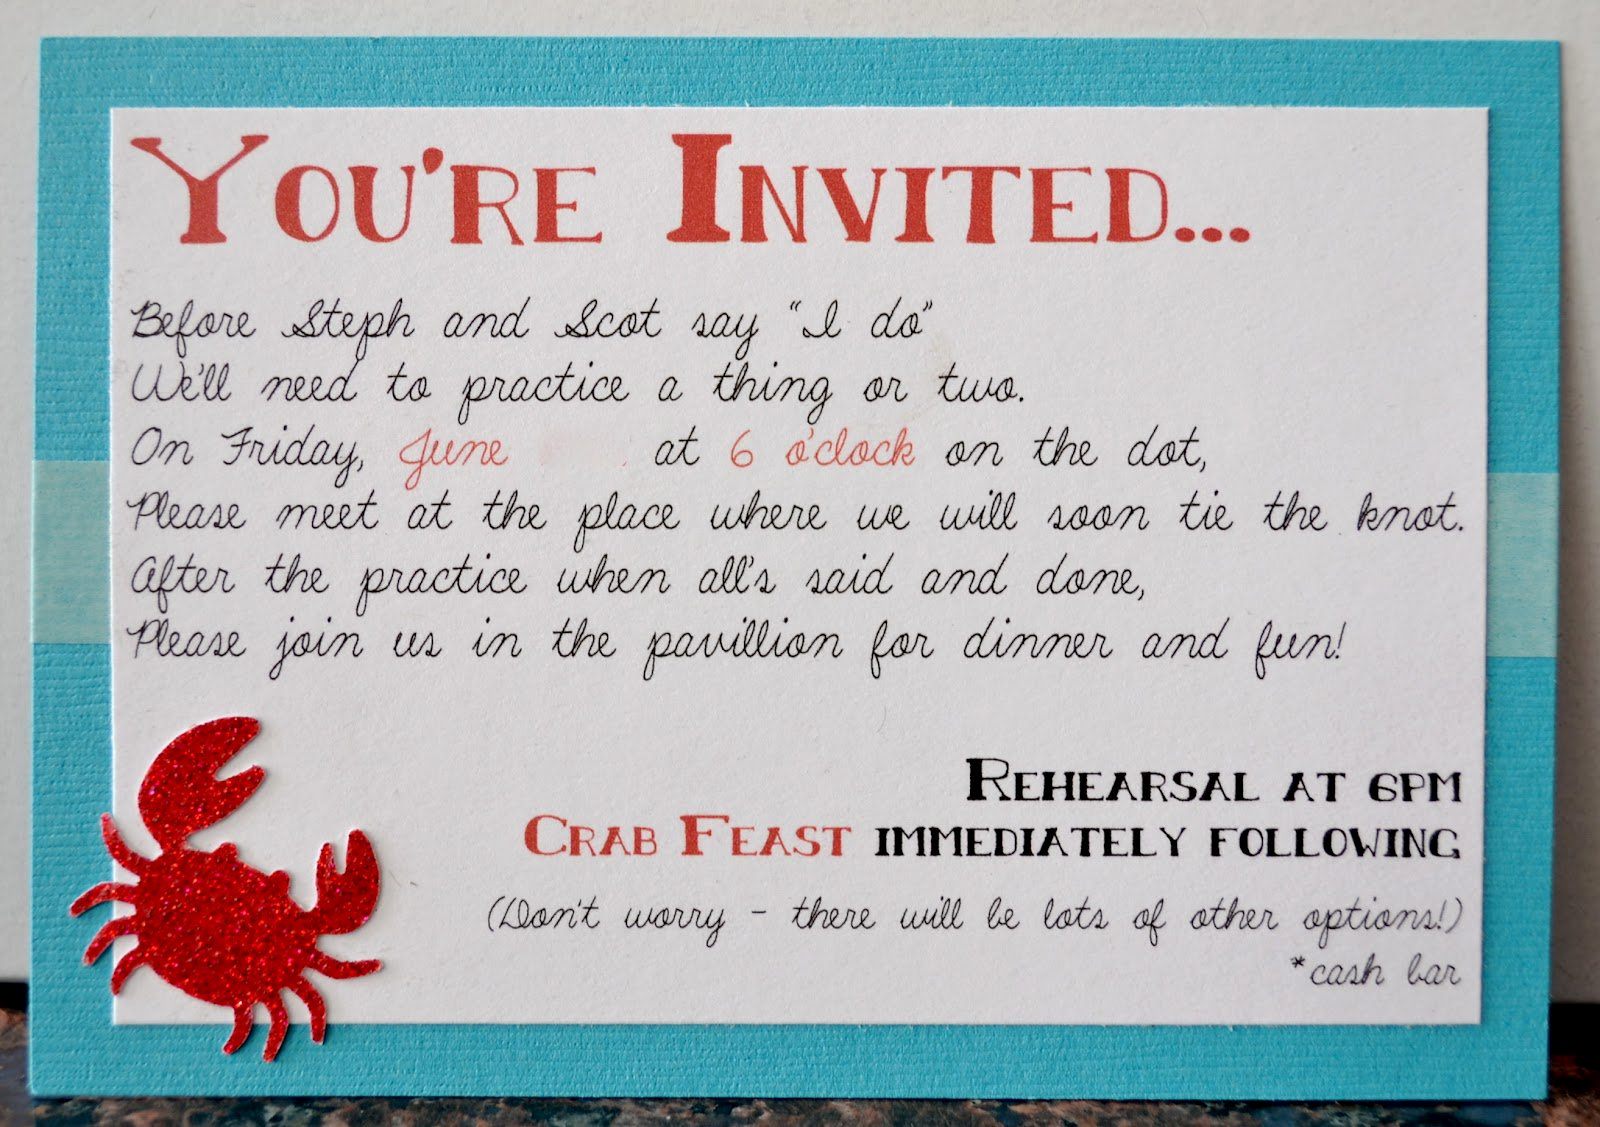 Fun Rehearsal Dinner Invitation Wording New Funny Dinner Party Invitation Wording